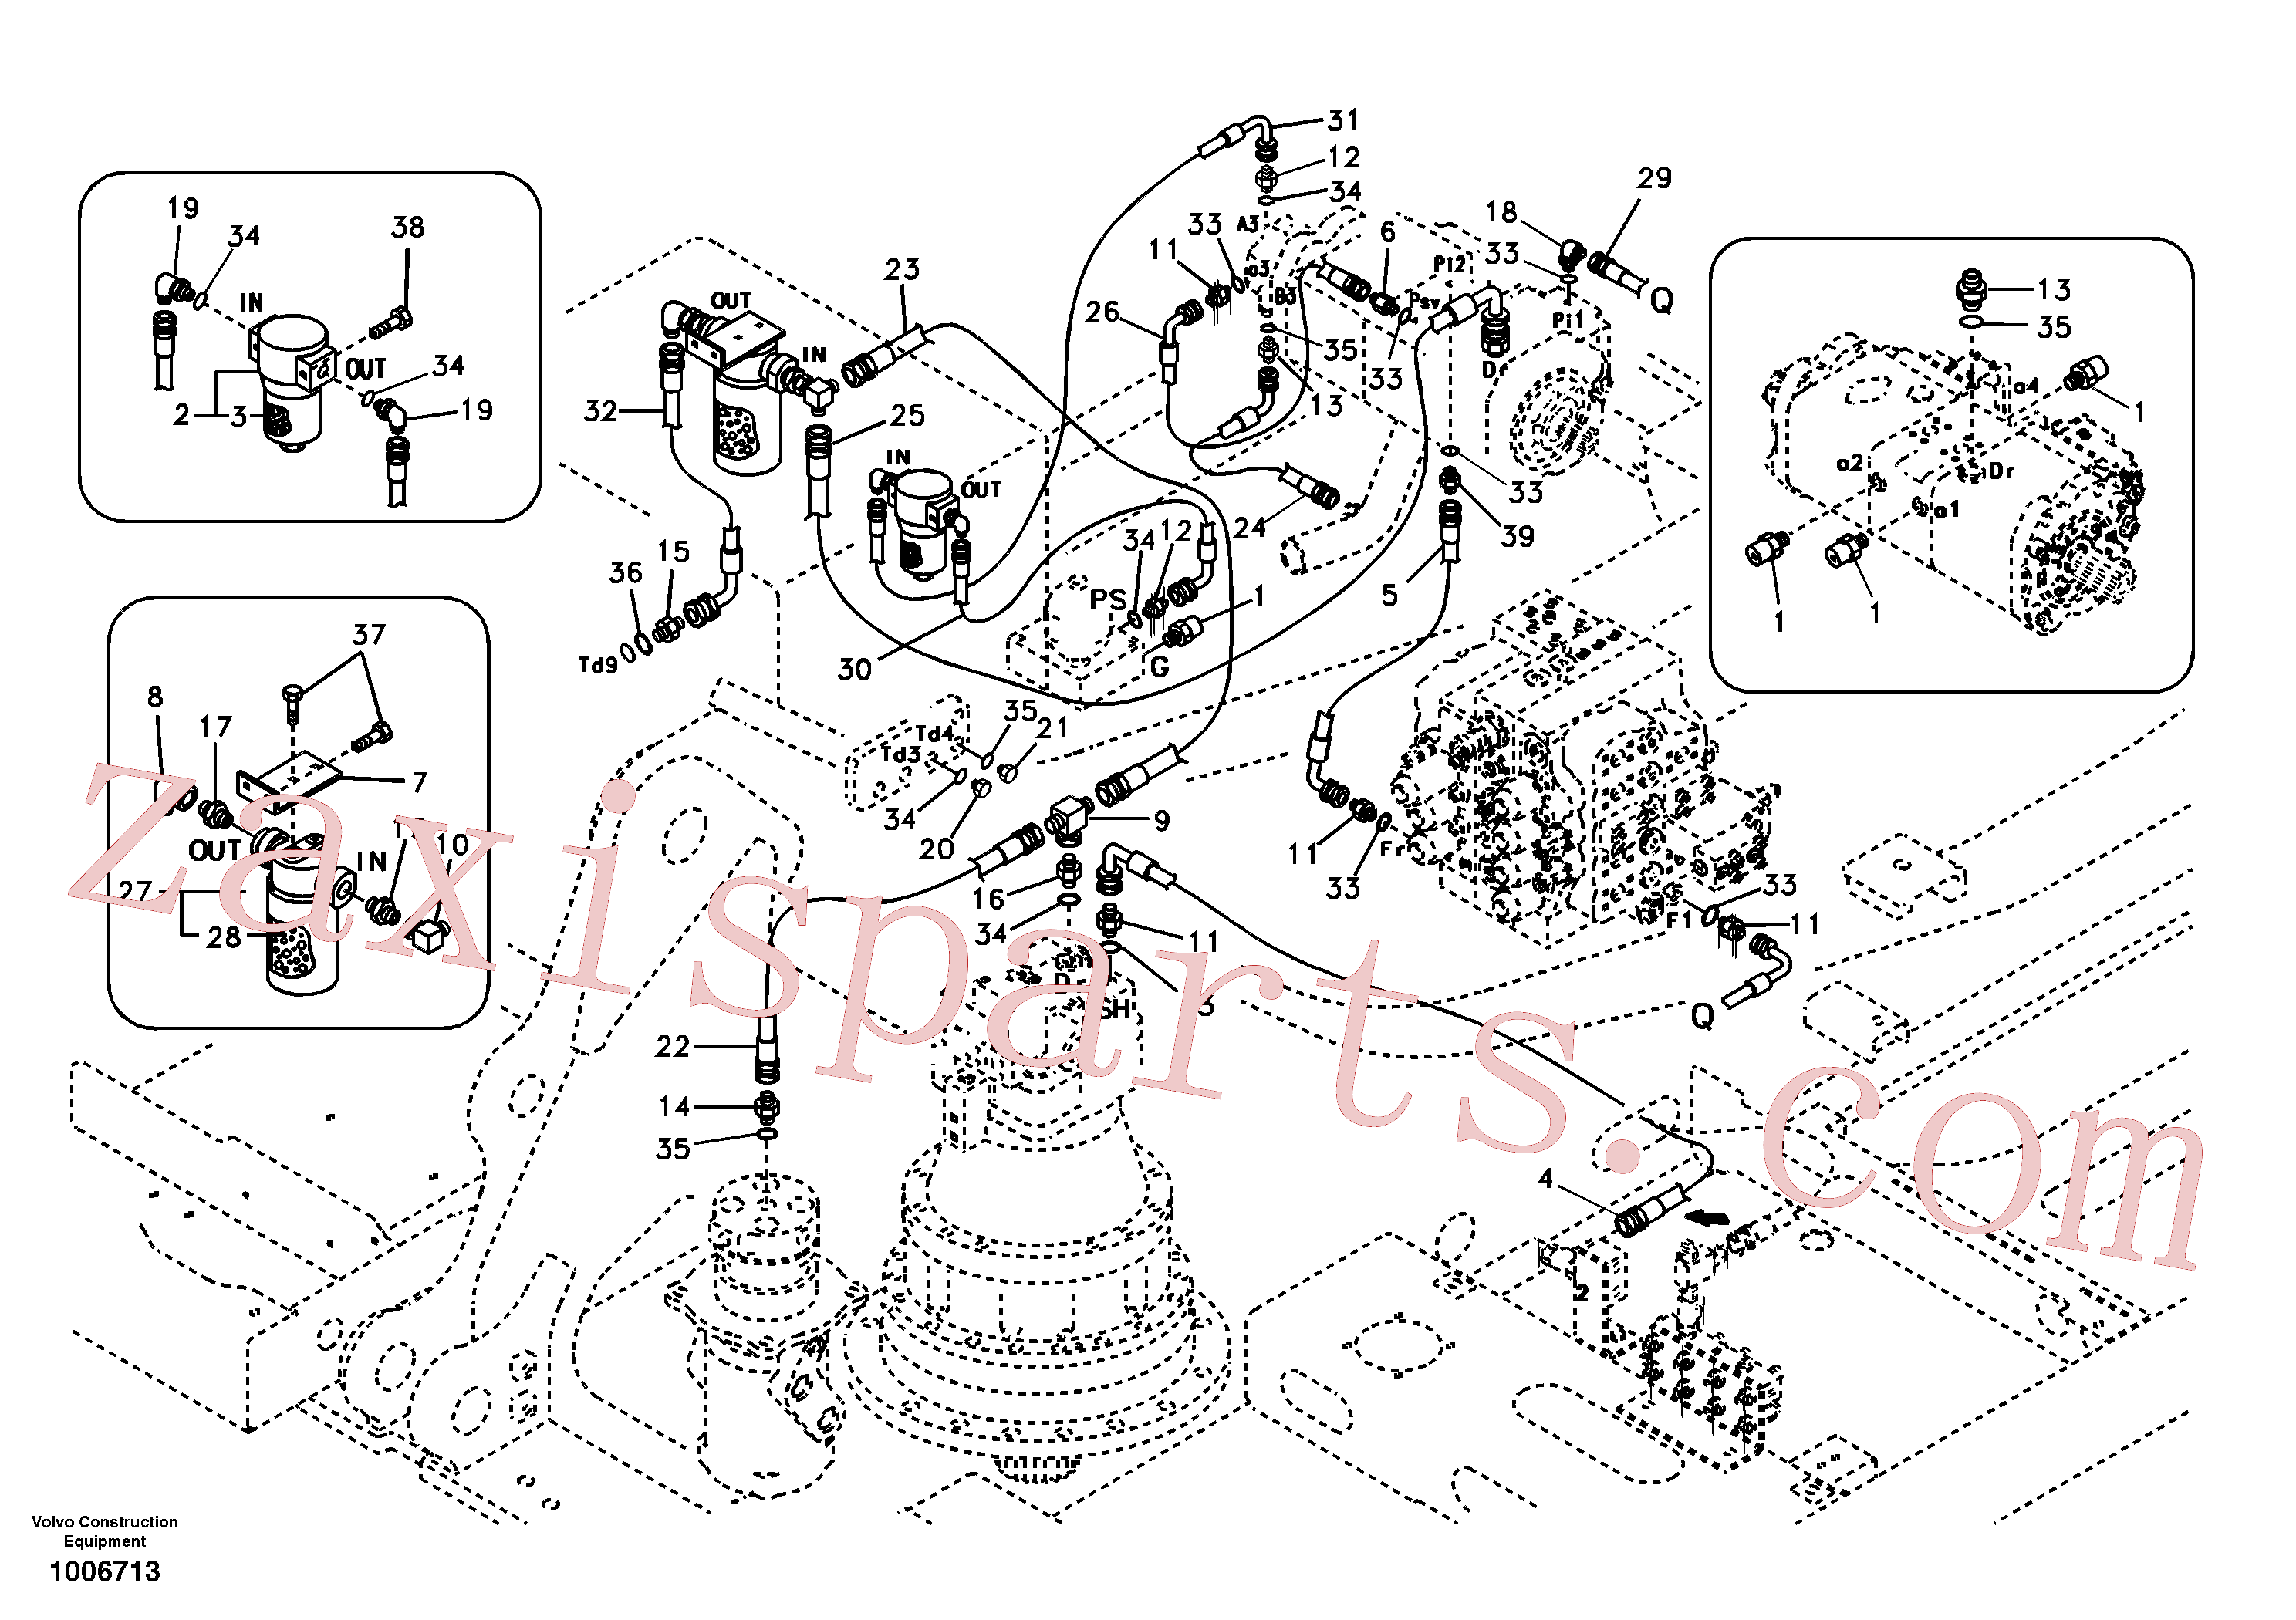 SA1042-00820 for Volvo Servo system, pump piping and filter mount.(1006713 assembly)